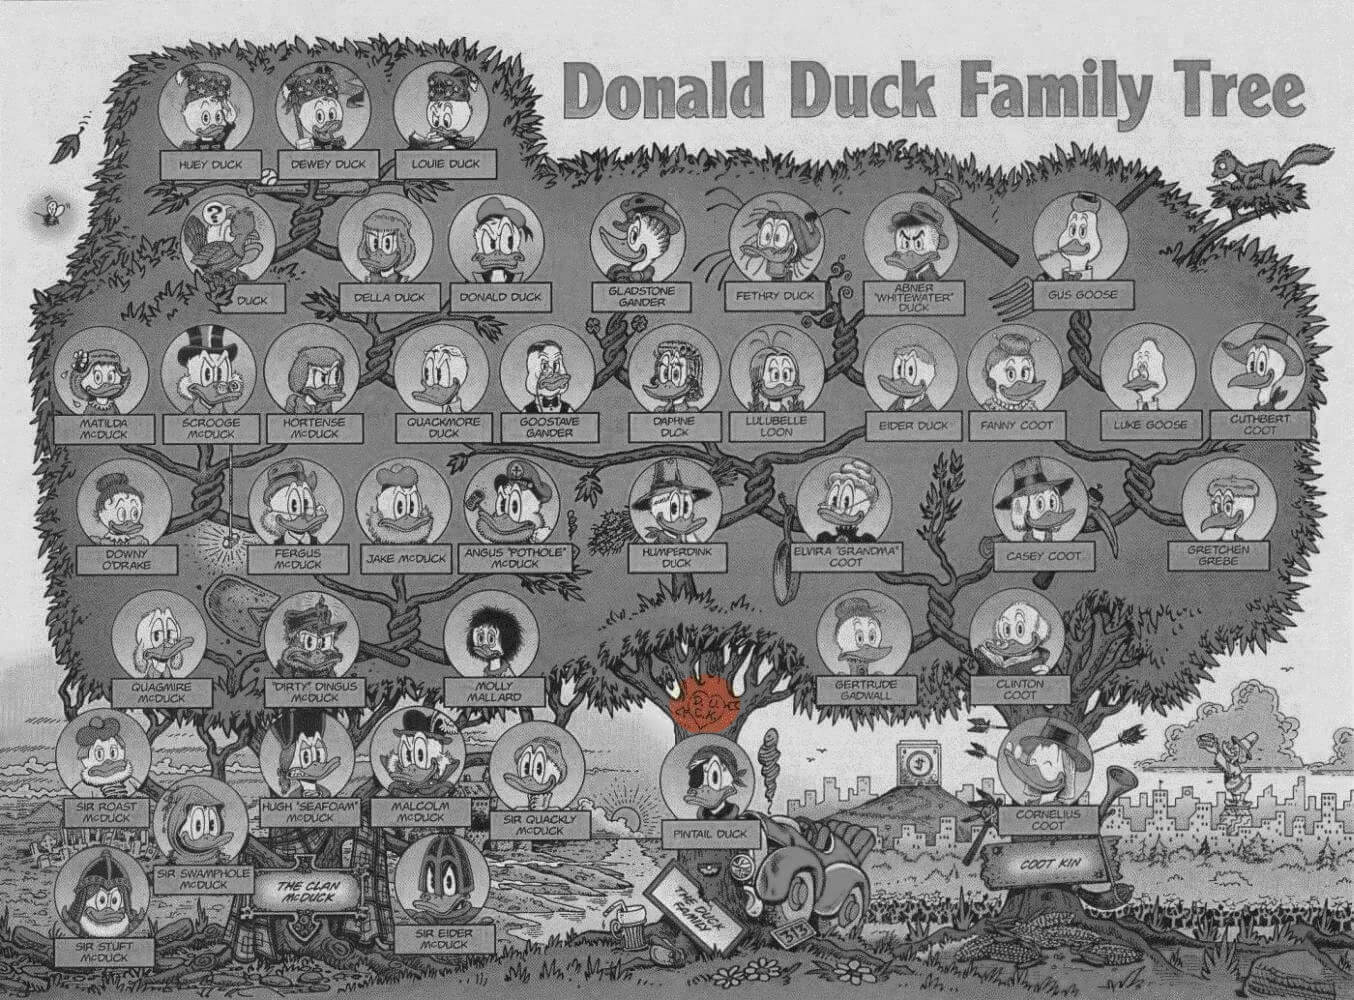 D.U.C.K in Donald Duck Family Tree first page